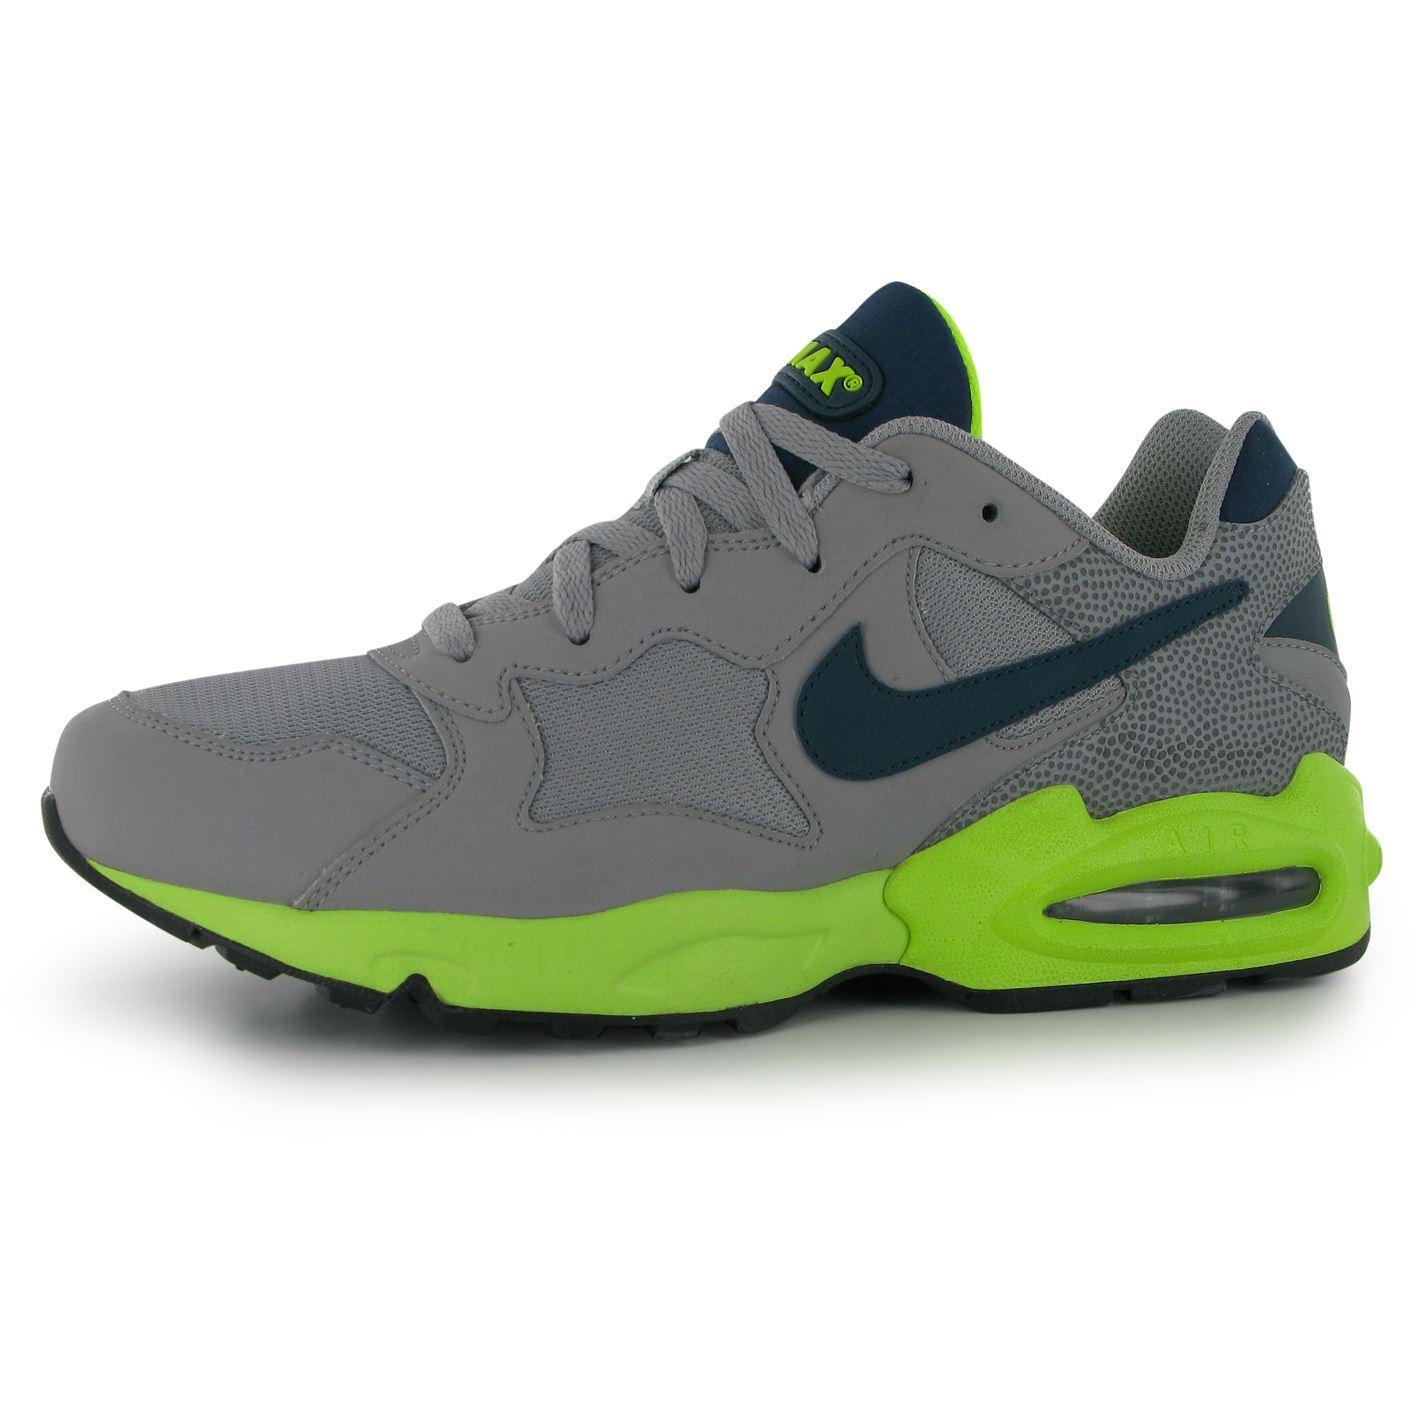 Nike Air Max Triax 94 Men's Running Shoes Grey/Volt